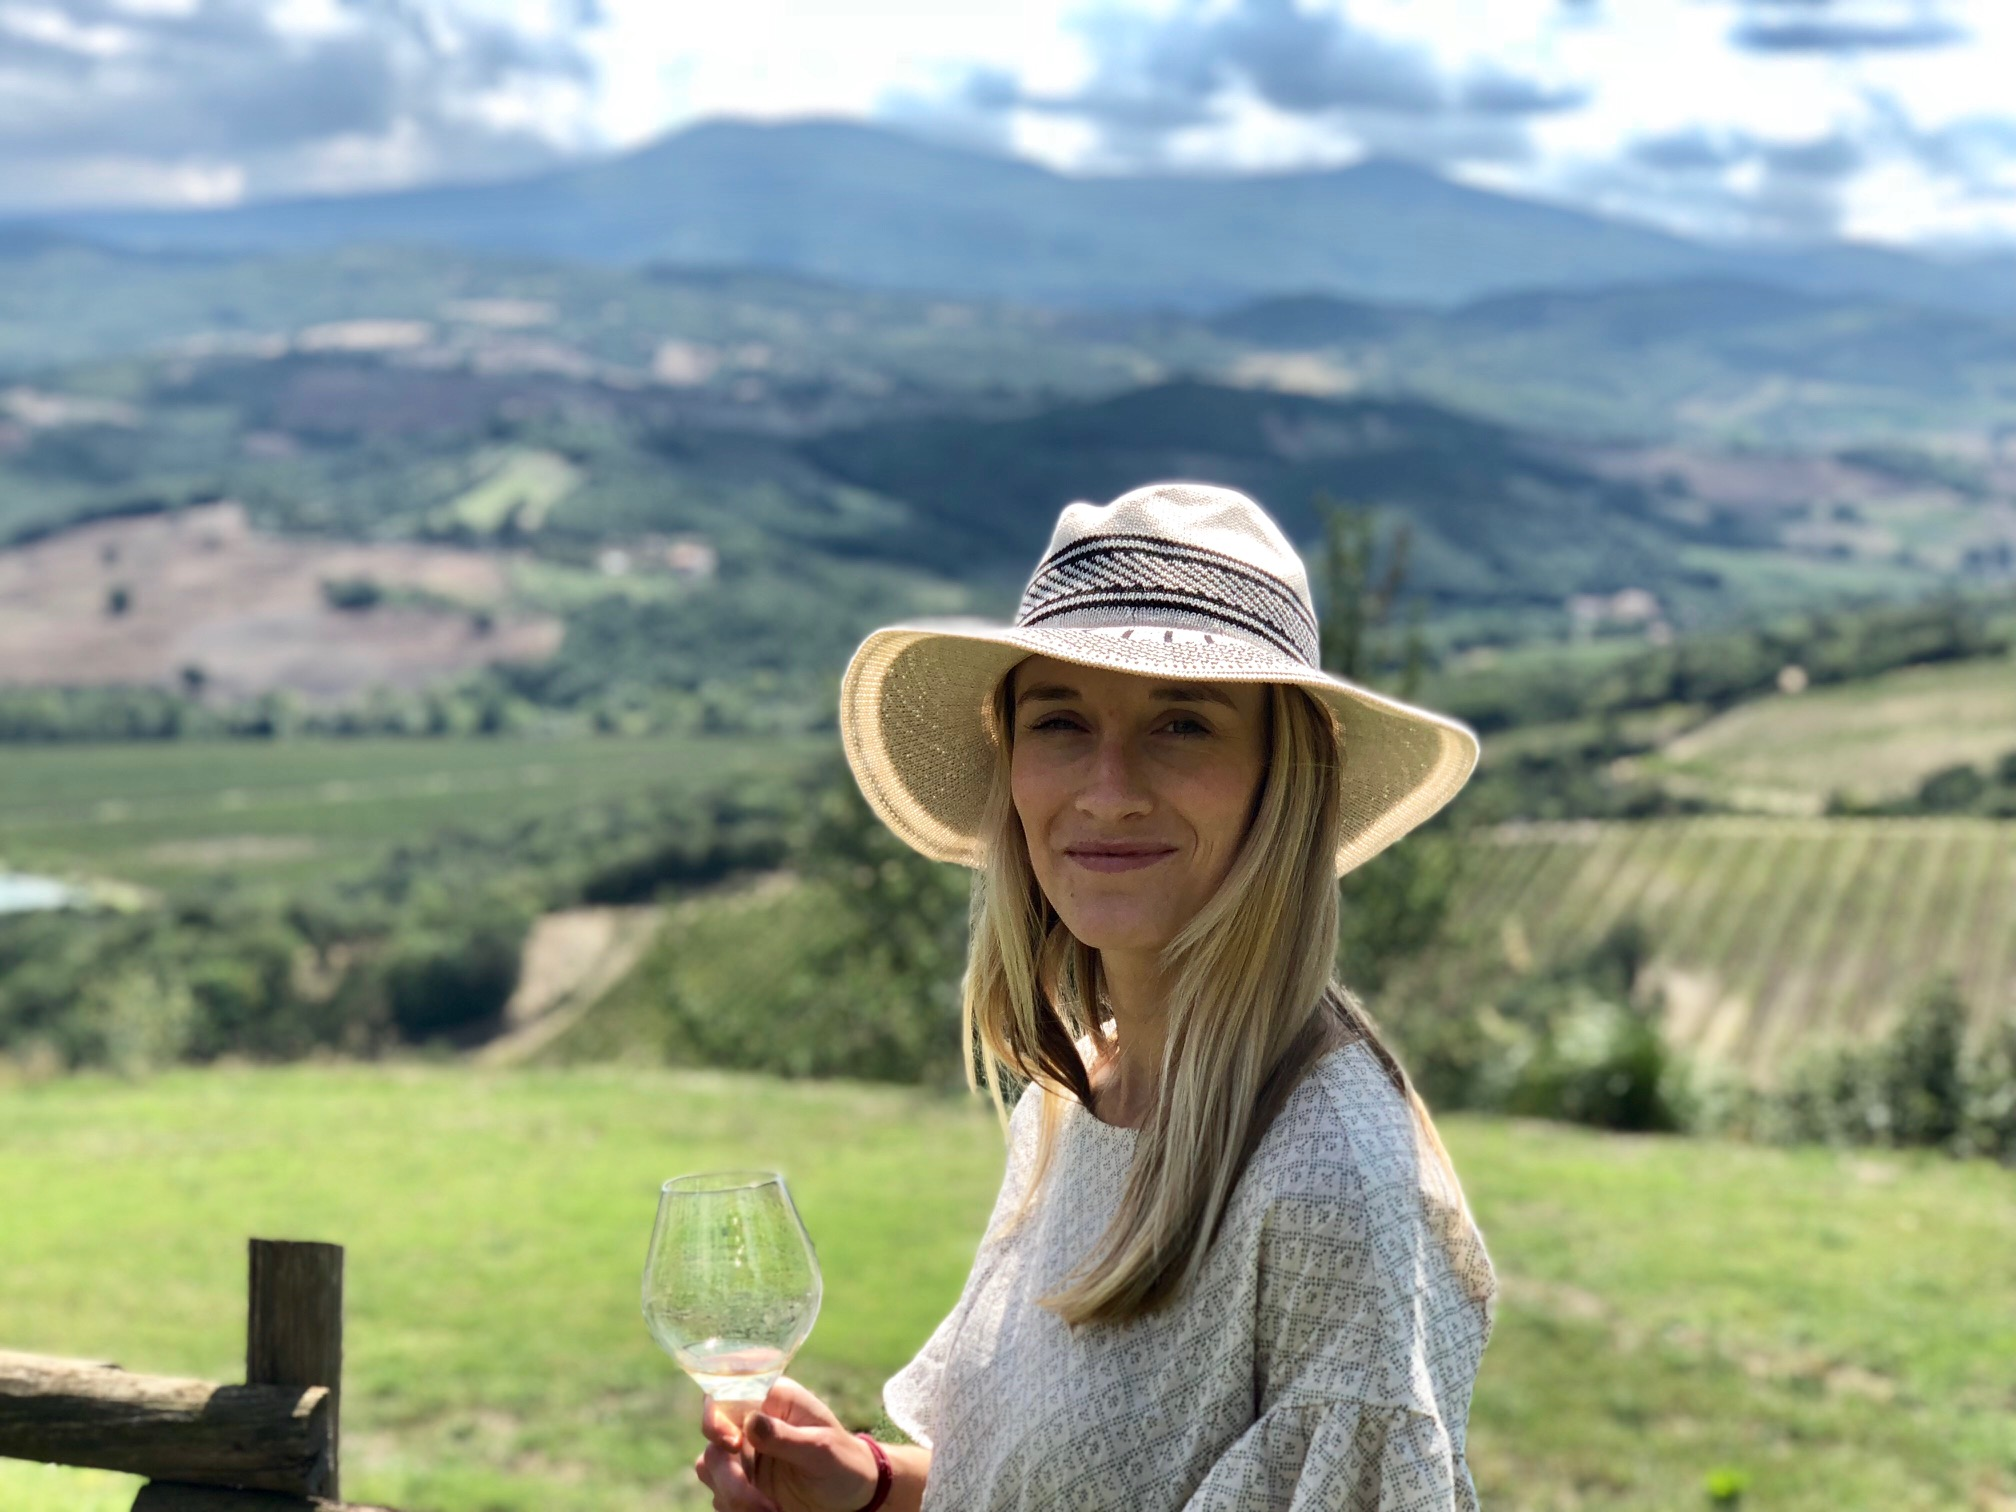 At one of Tuscany's unreal vineyards right before an authentic Tuscan lunch prepared by the vineyard  madre . Can you believe that was entirely GF too? Neither could I.